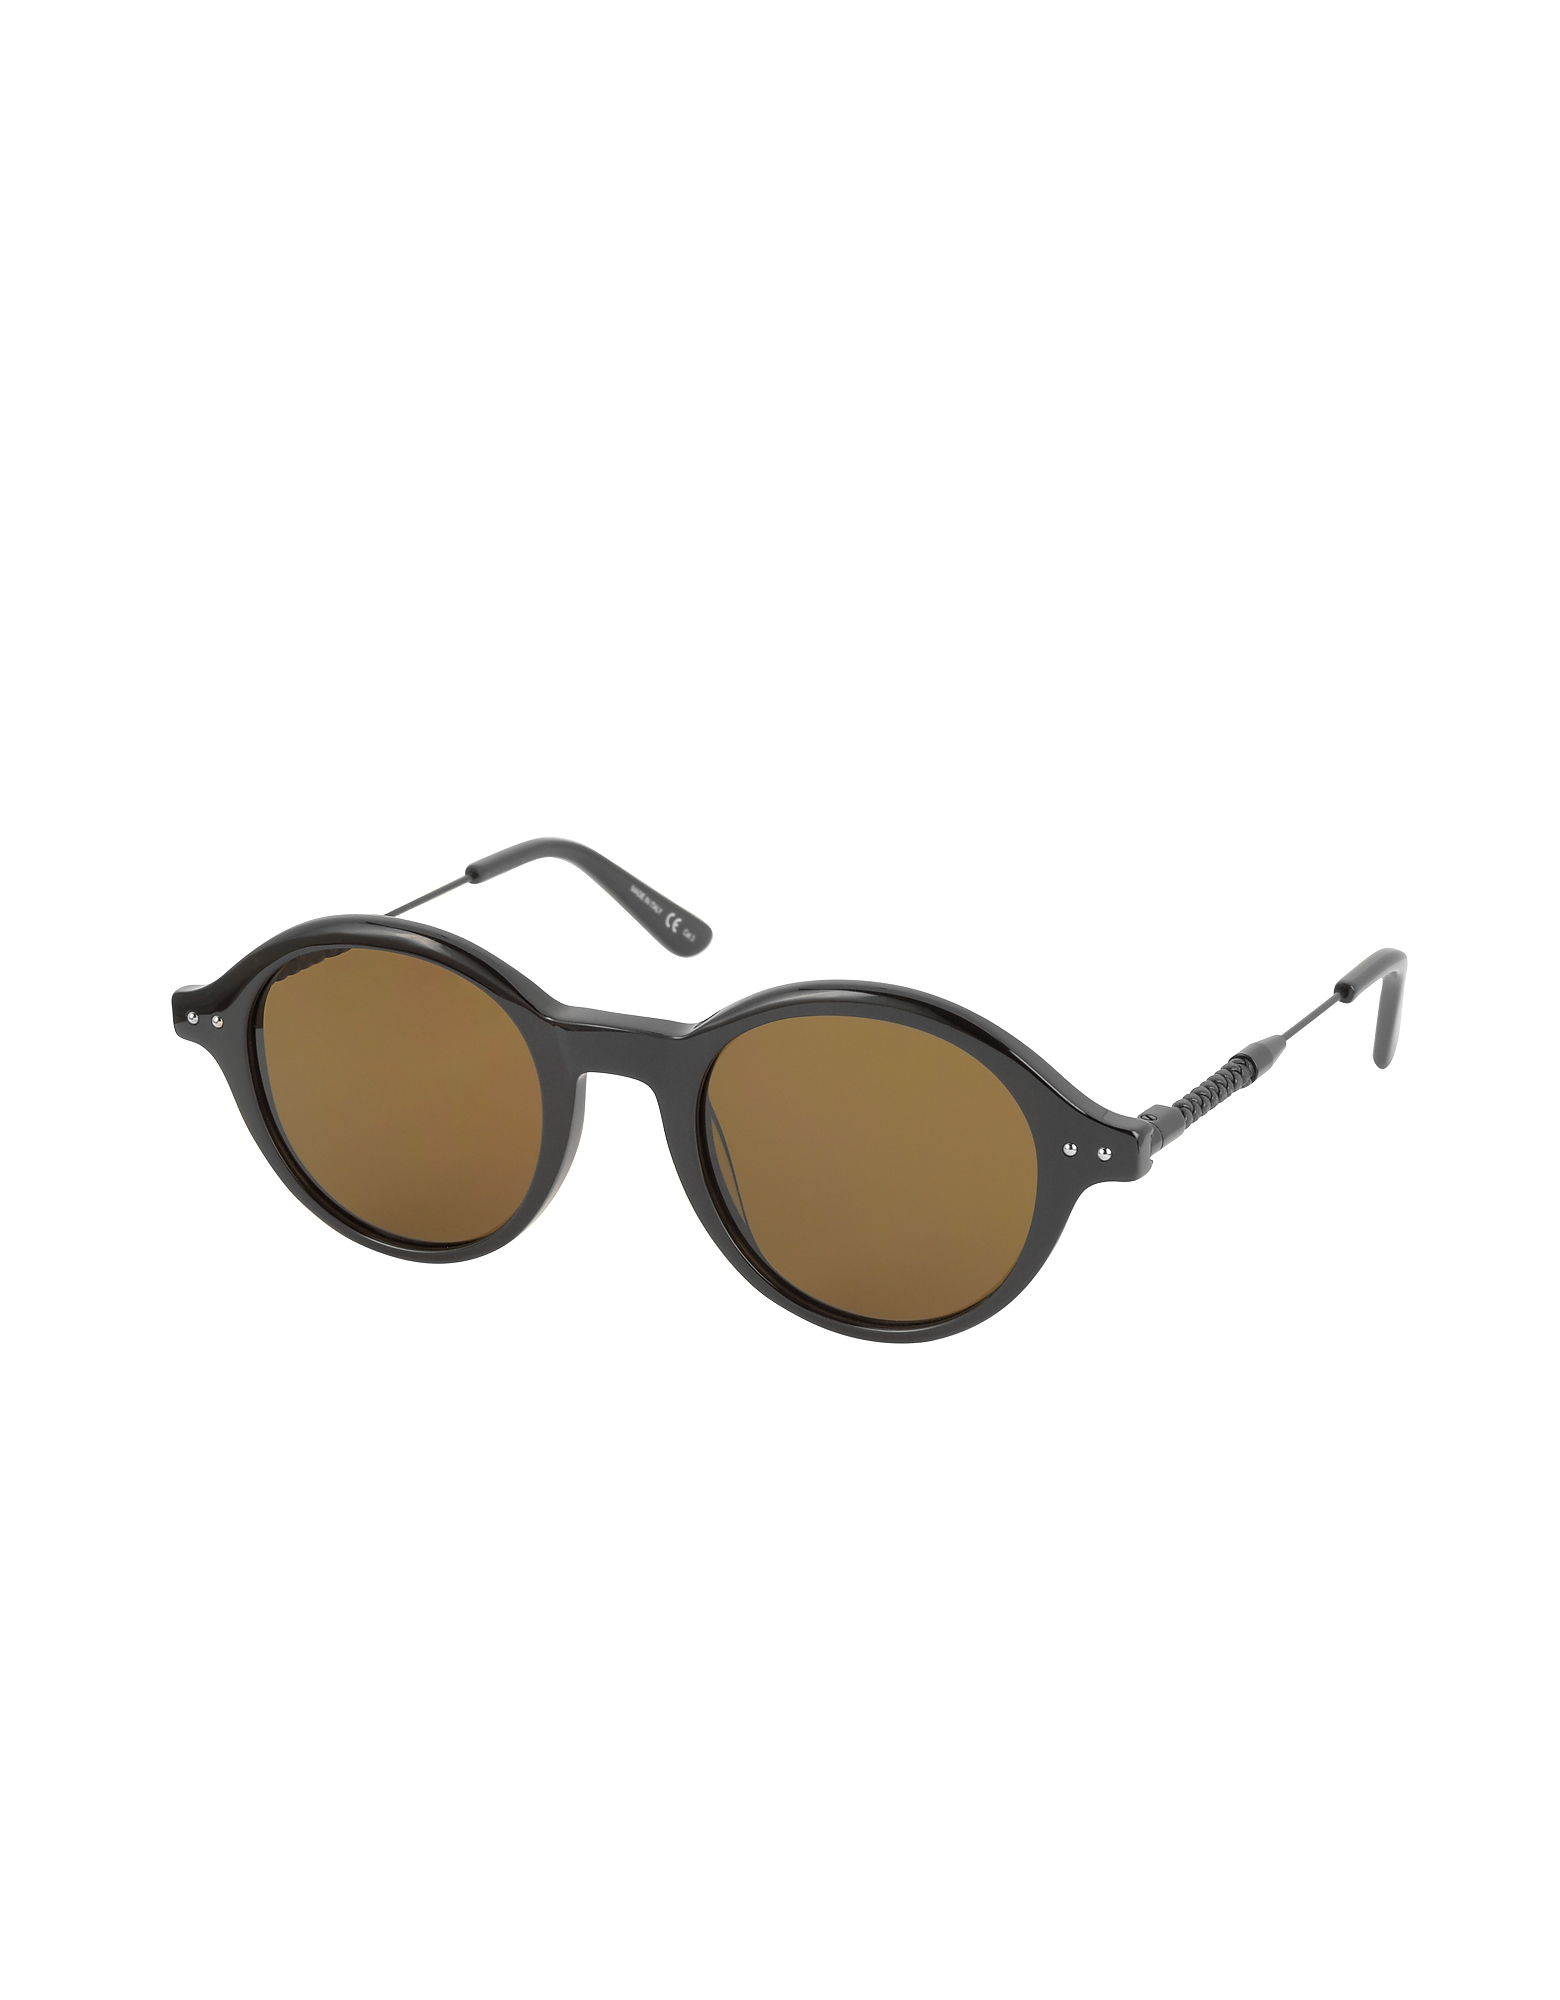 BV0095S 002 BV0107S Black Acetate Round Frame Men's Sunglasses от Forzieri.com INT